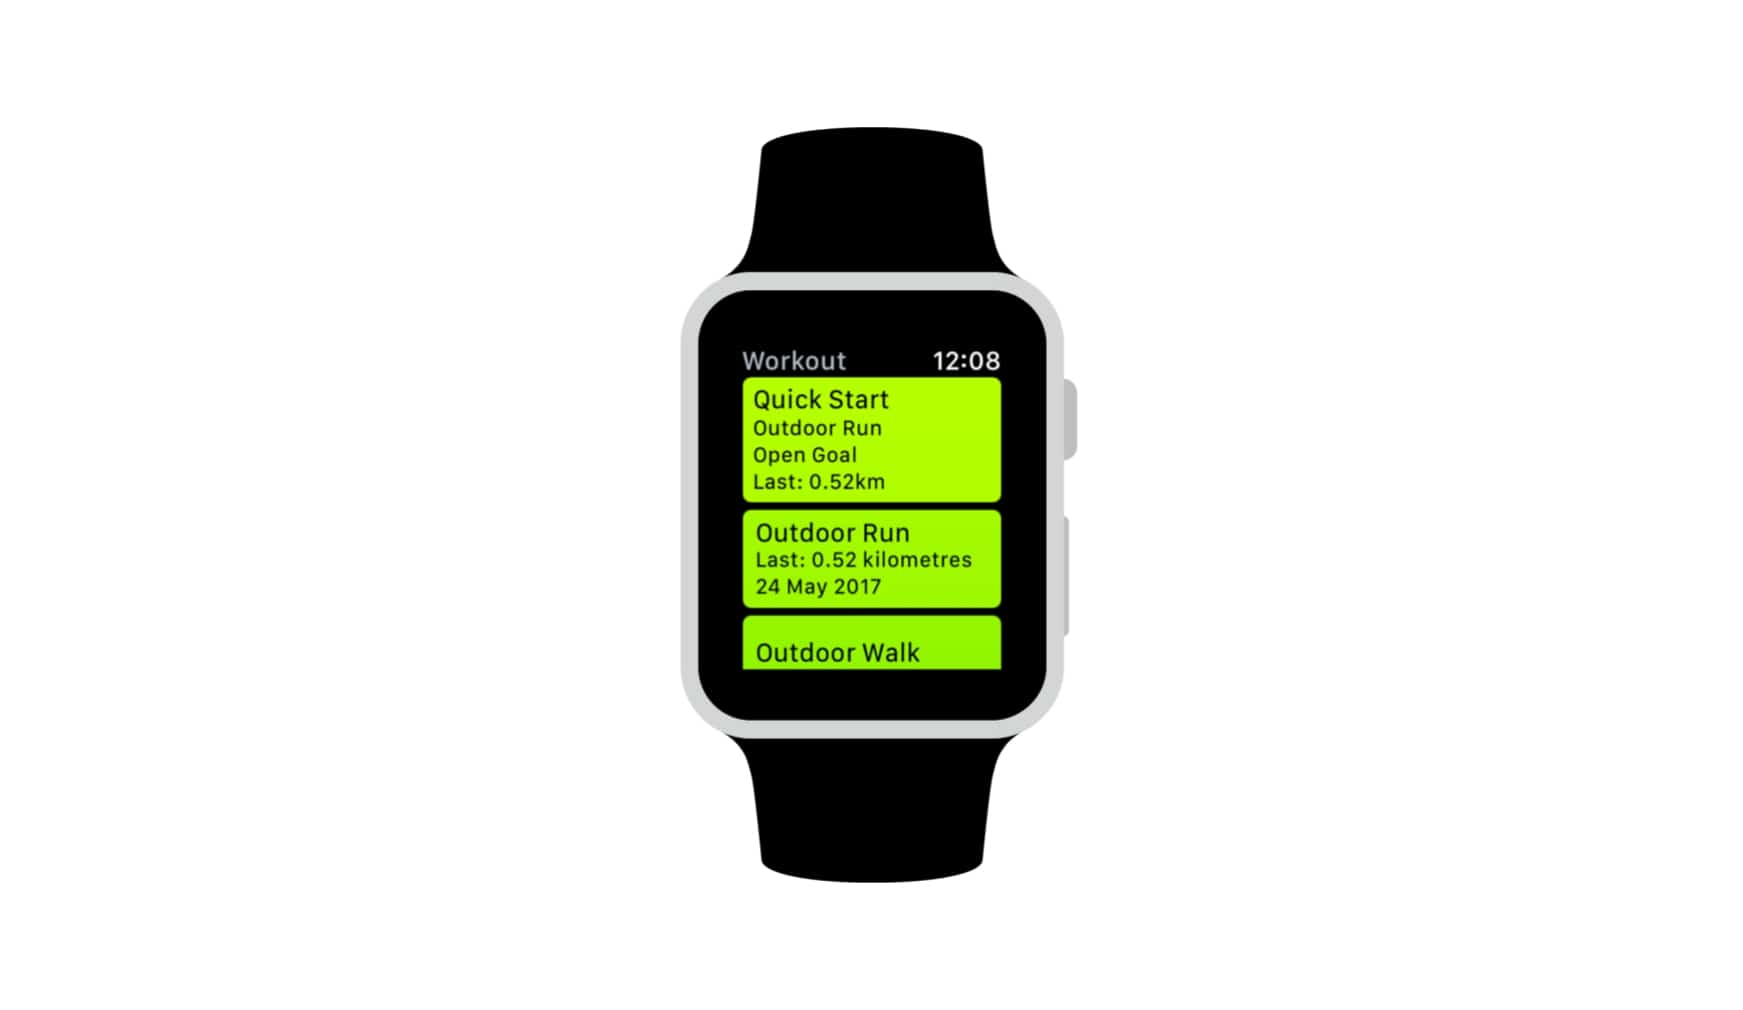 watchOS 3 workouts app